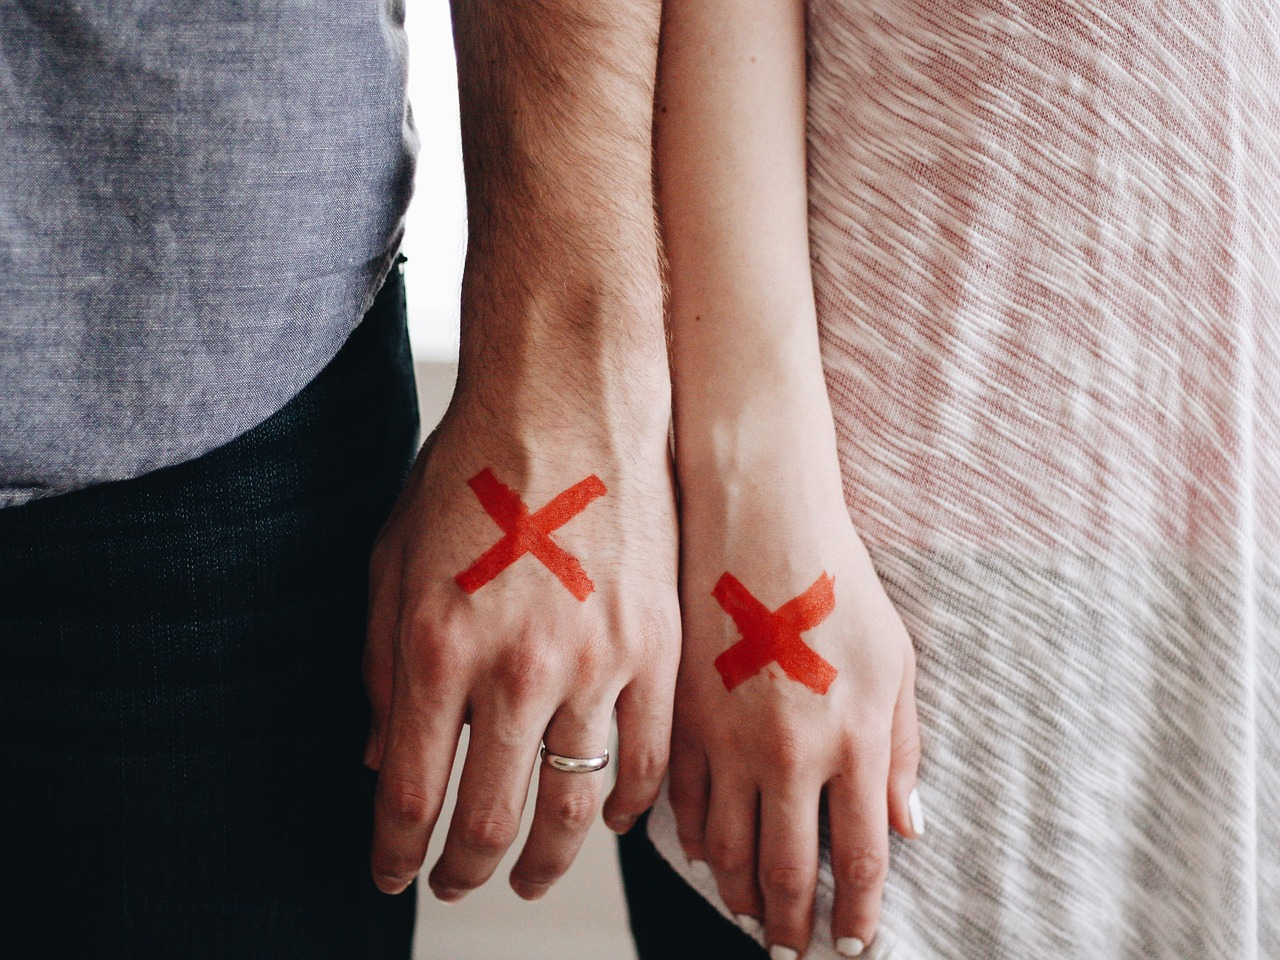 Nasty Divorce? 4 Things to Consider Before Hiring a Lawyer